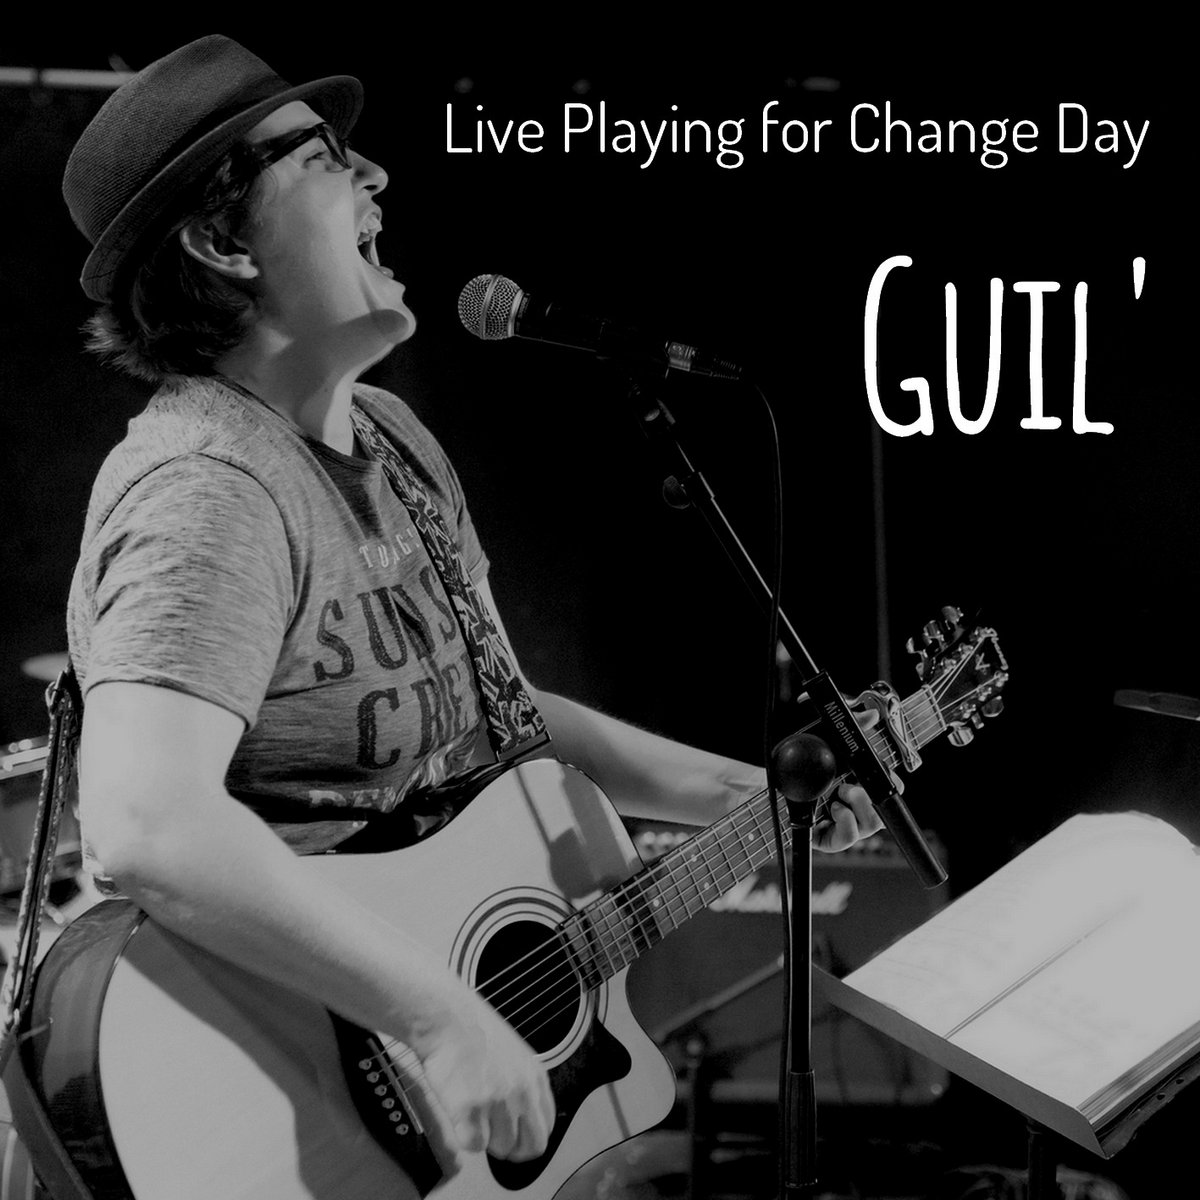 Guil' - Medley Bob Marley (Redemption song/Three little